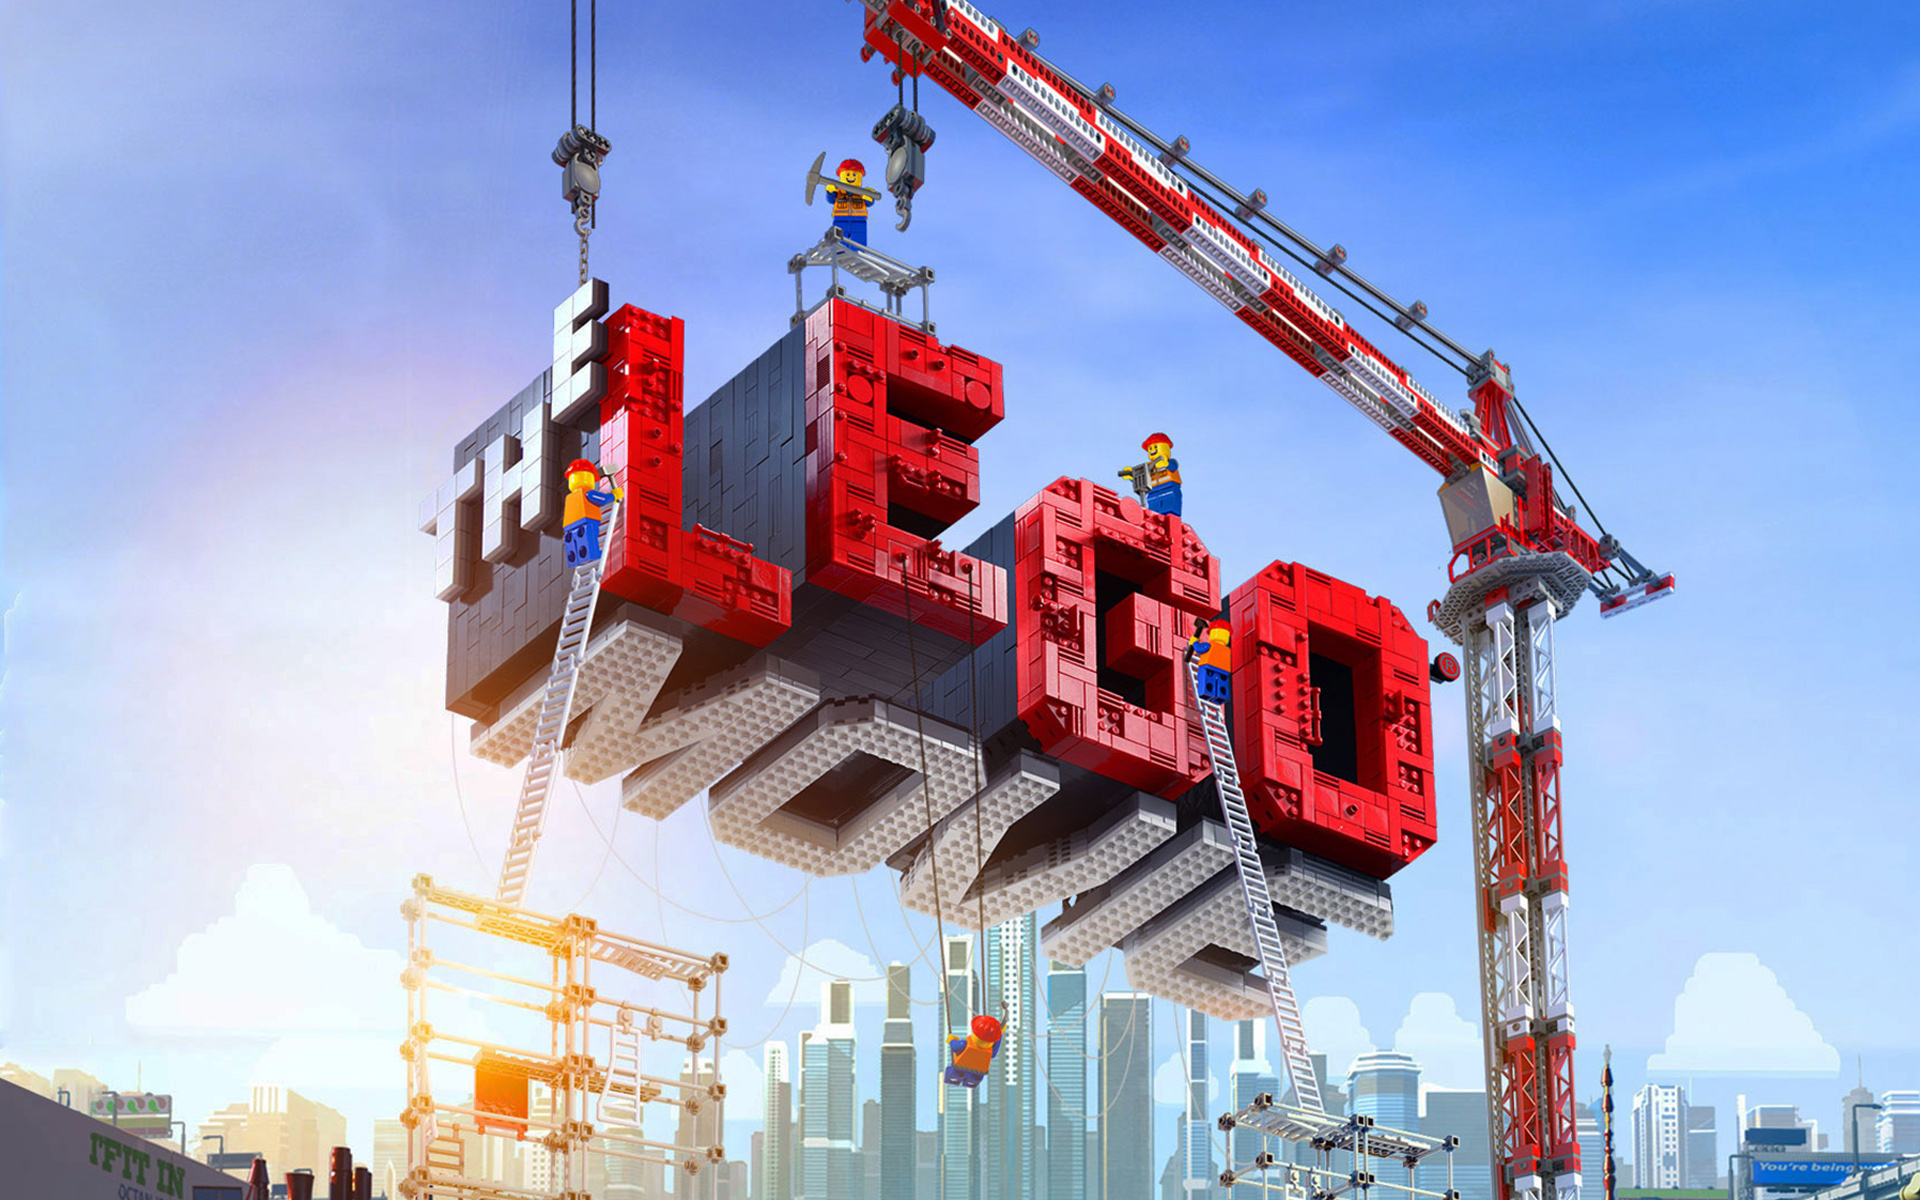 The Lego Movie Wallpapers HD Wallpapers 1920x1200